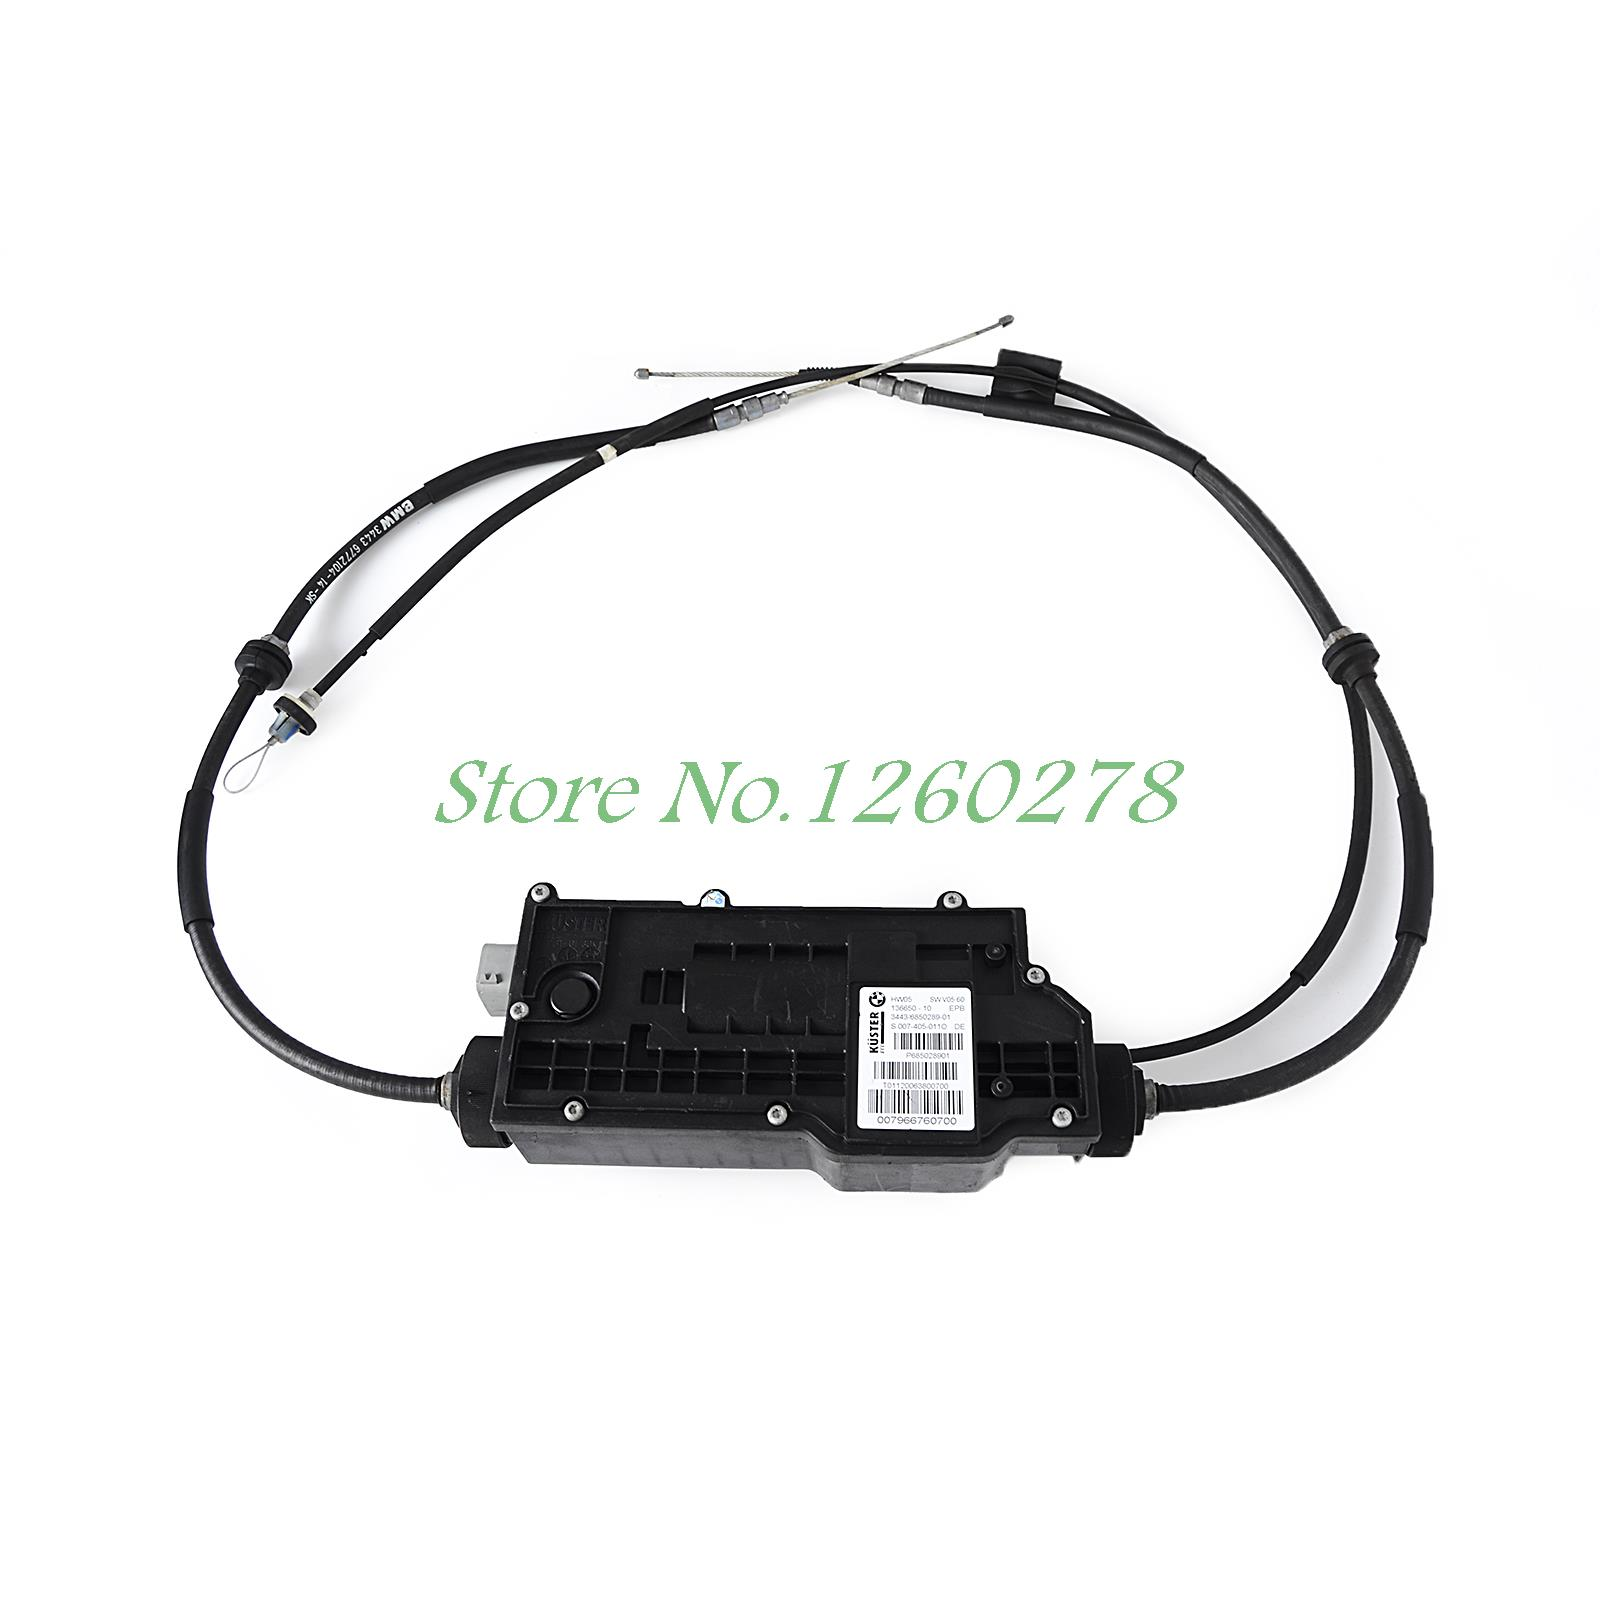 Parking Brake Actuator With Control Unit for BMW E70 X5